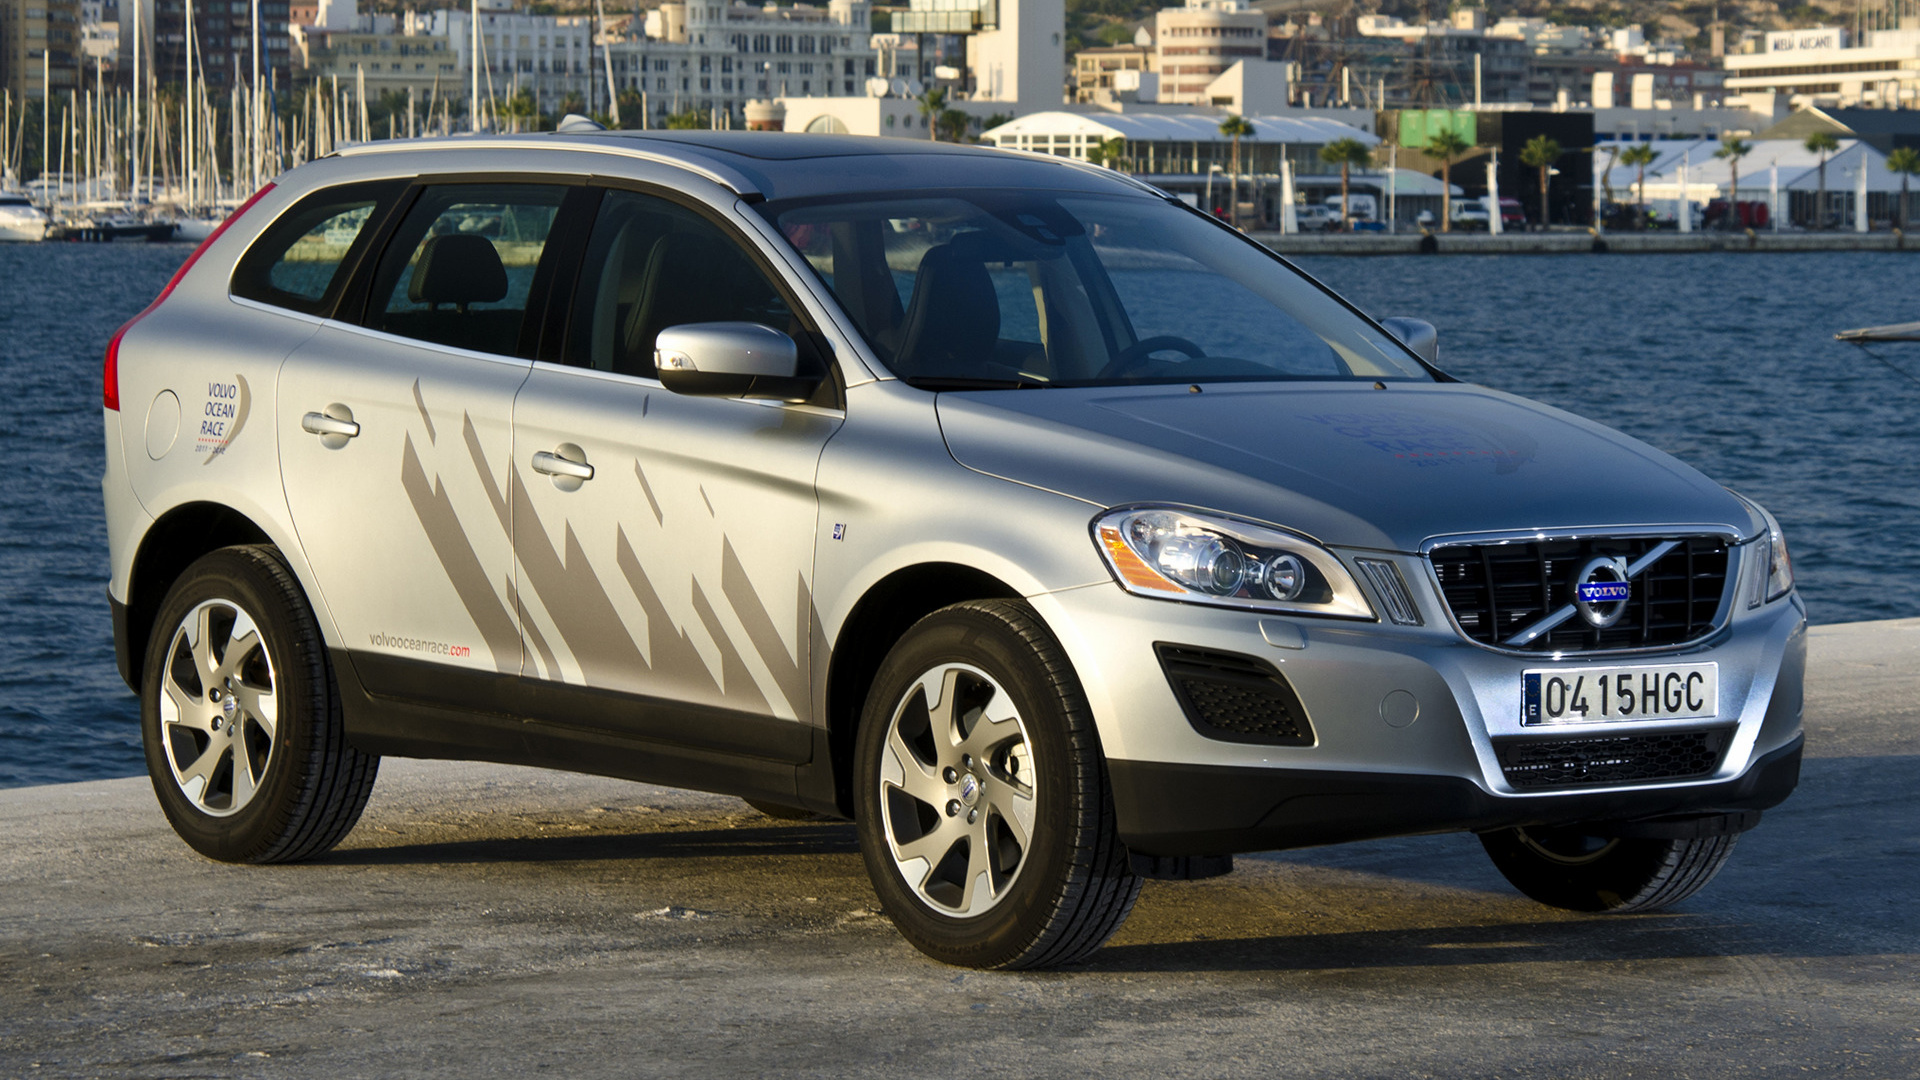 Volvo XC60 Ocean Race (2011) Wallpapers and HD Images - Car Pixel